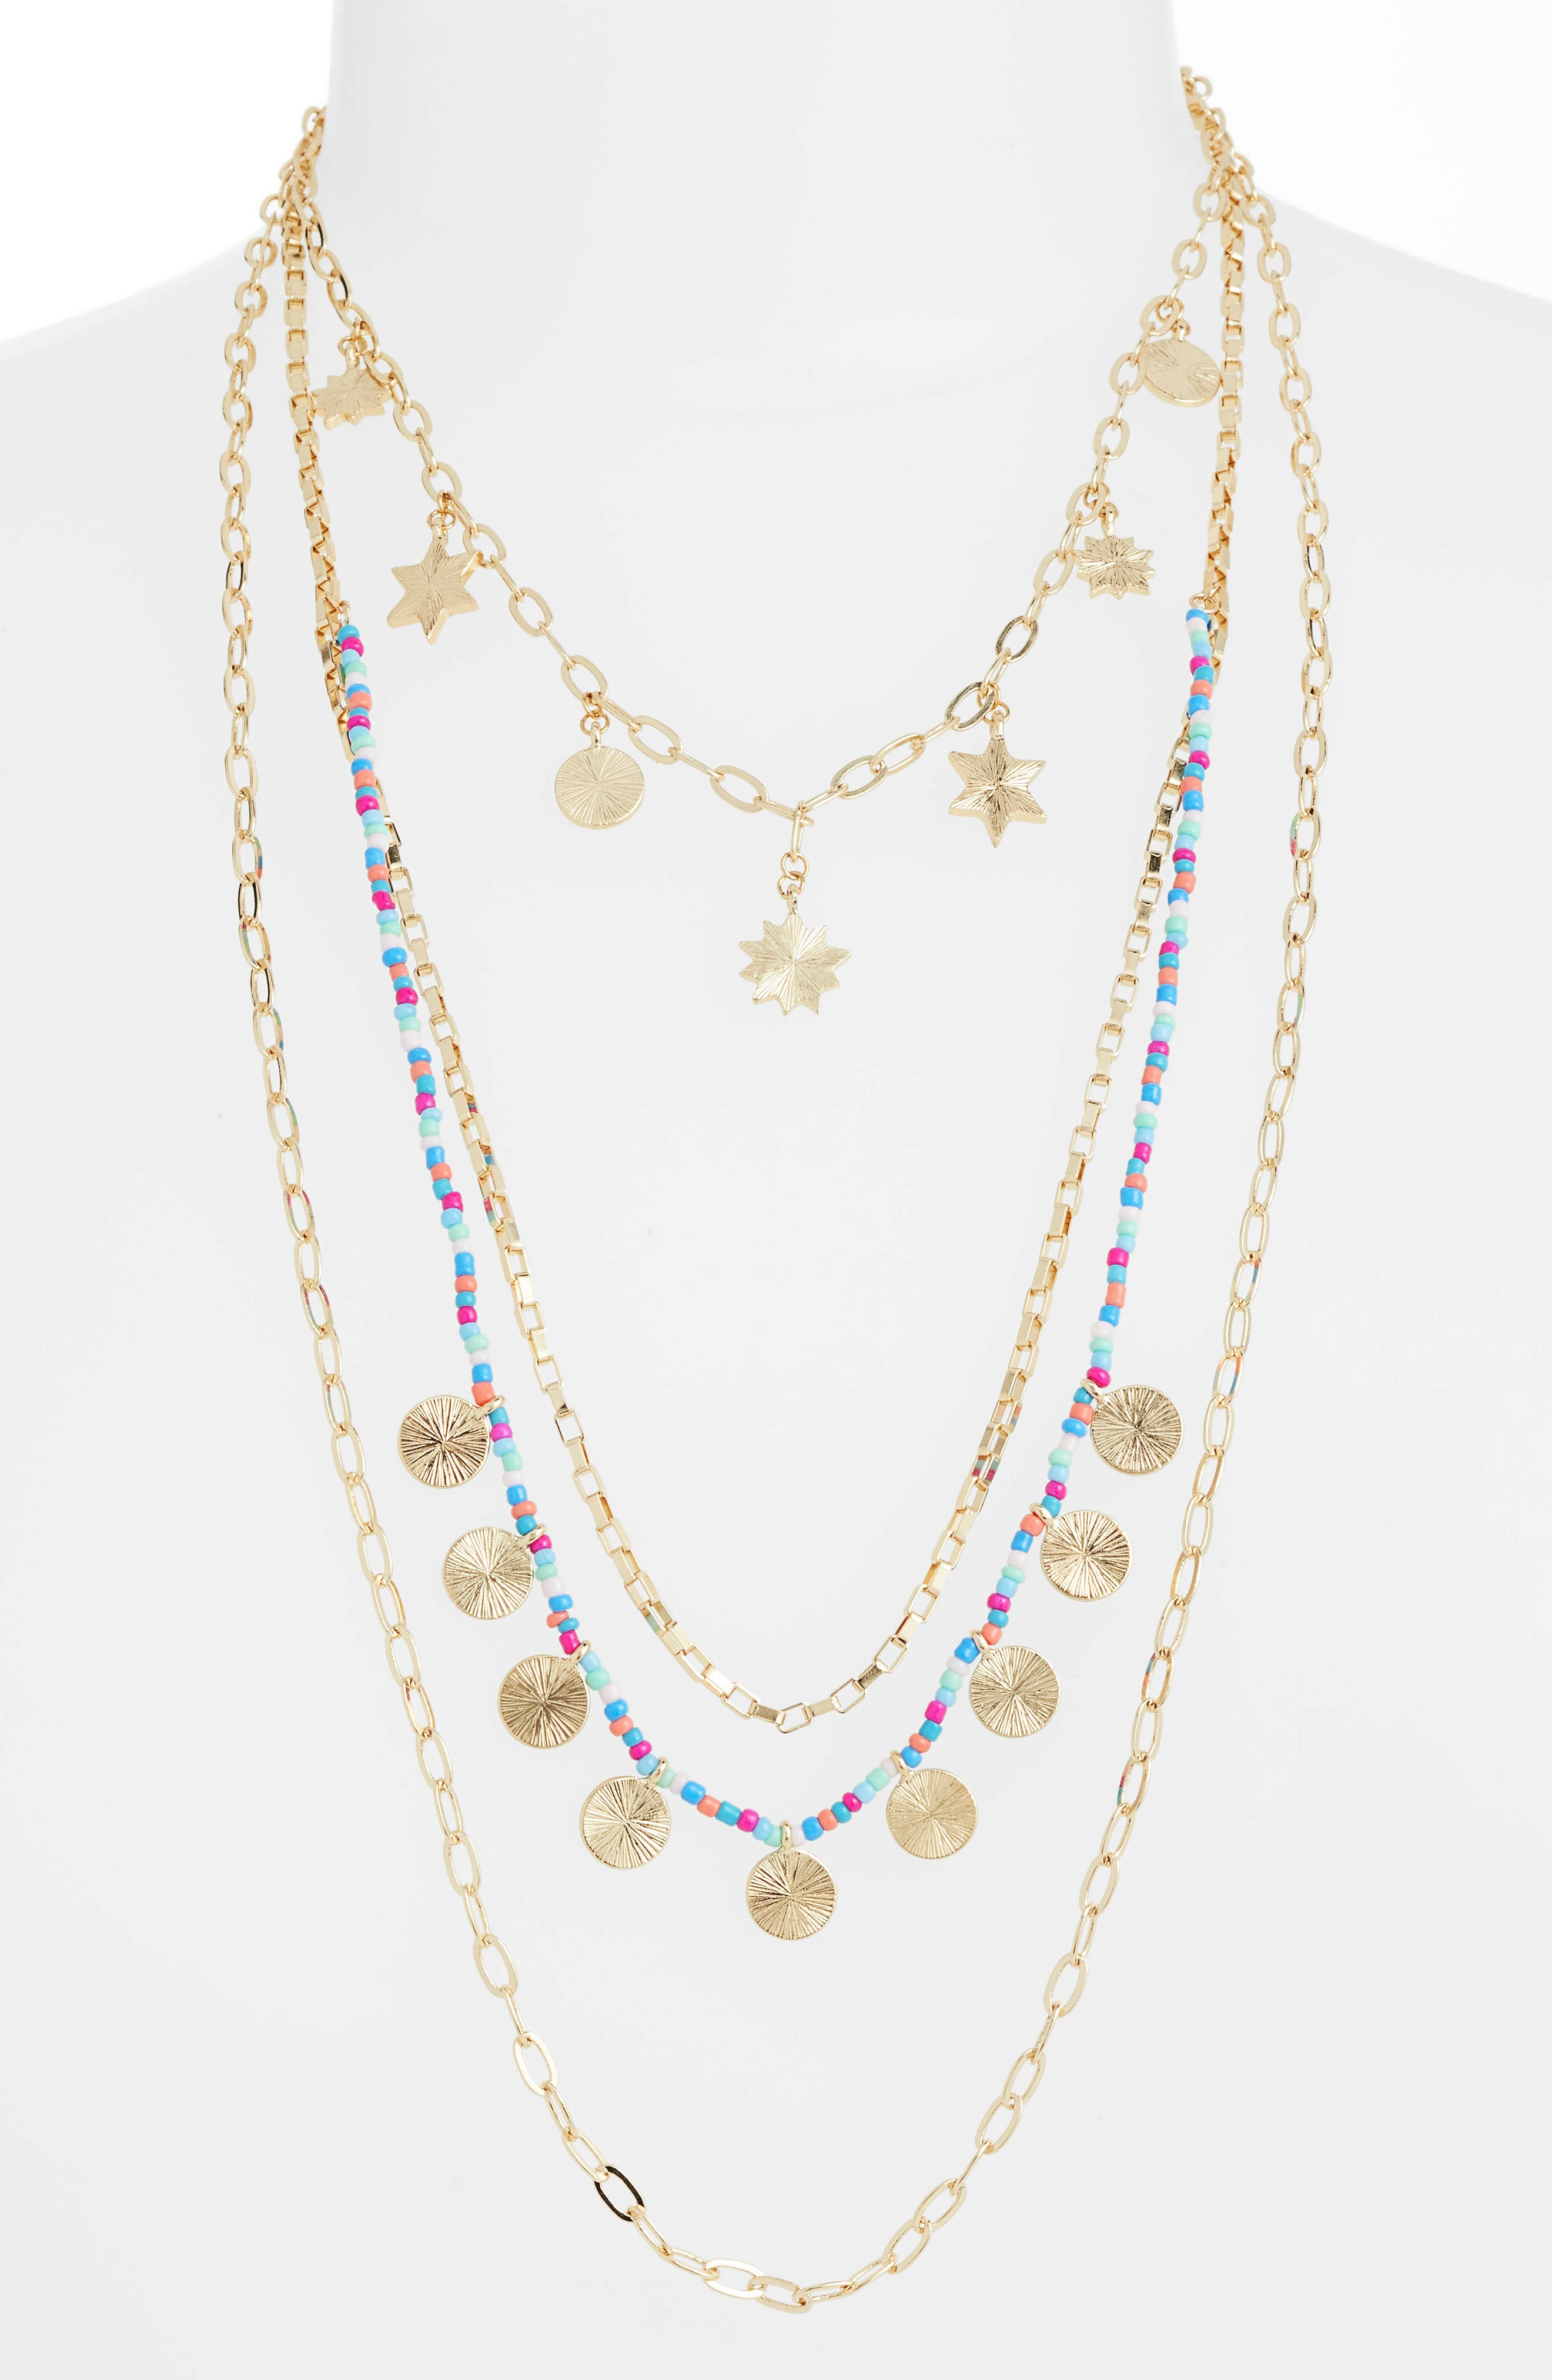 Sole Charm Statement Multistrand Necklace,                             Main thumbnail 1, color,                             Bright Multi/ Gold